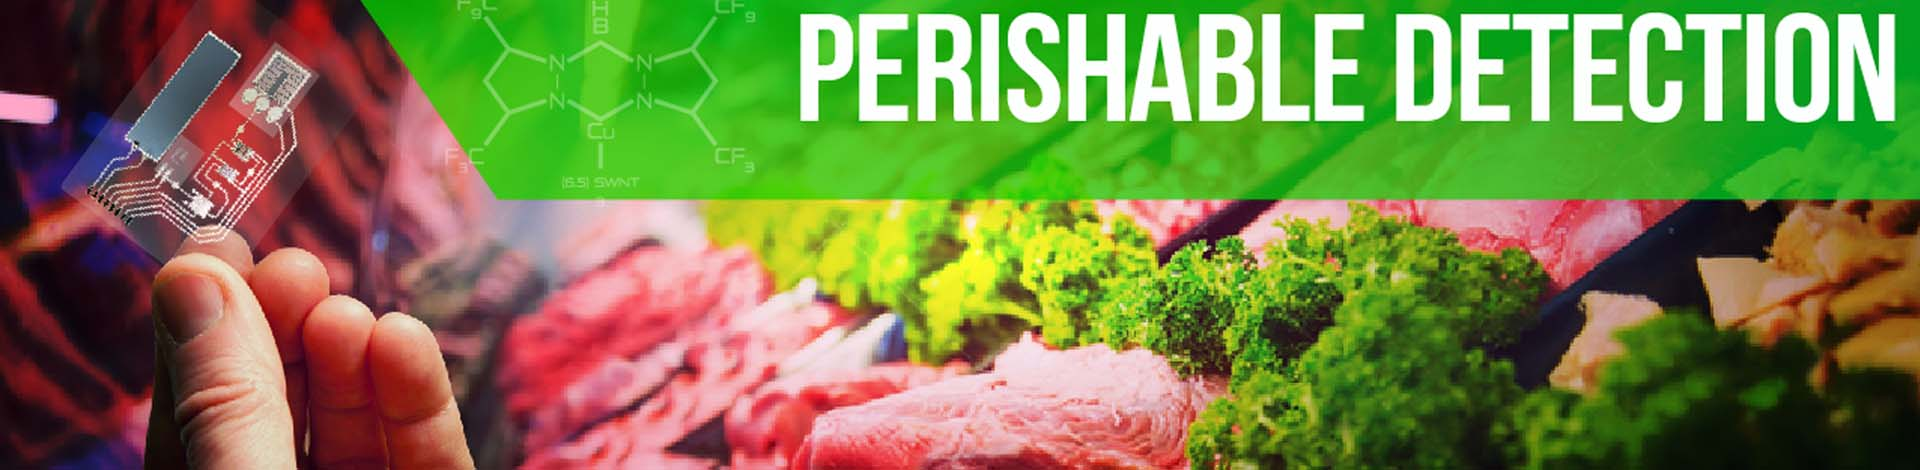 perishable deduction in food industry